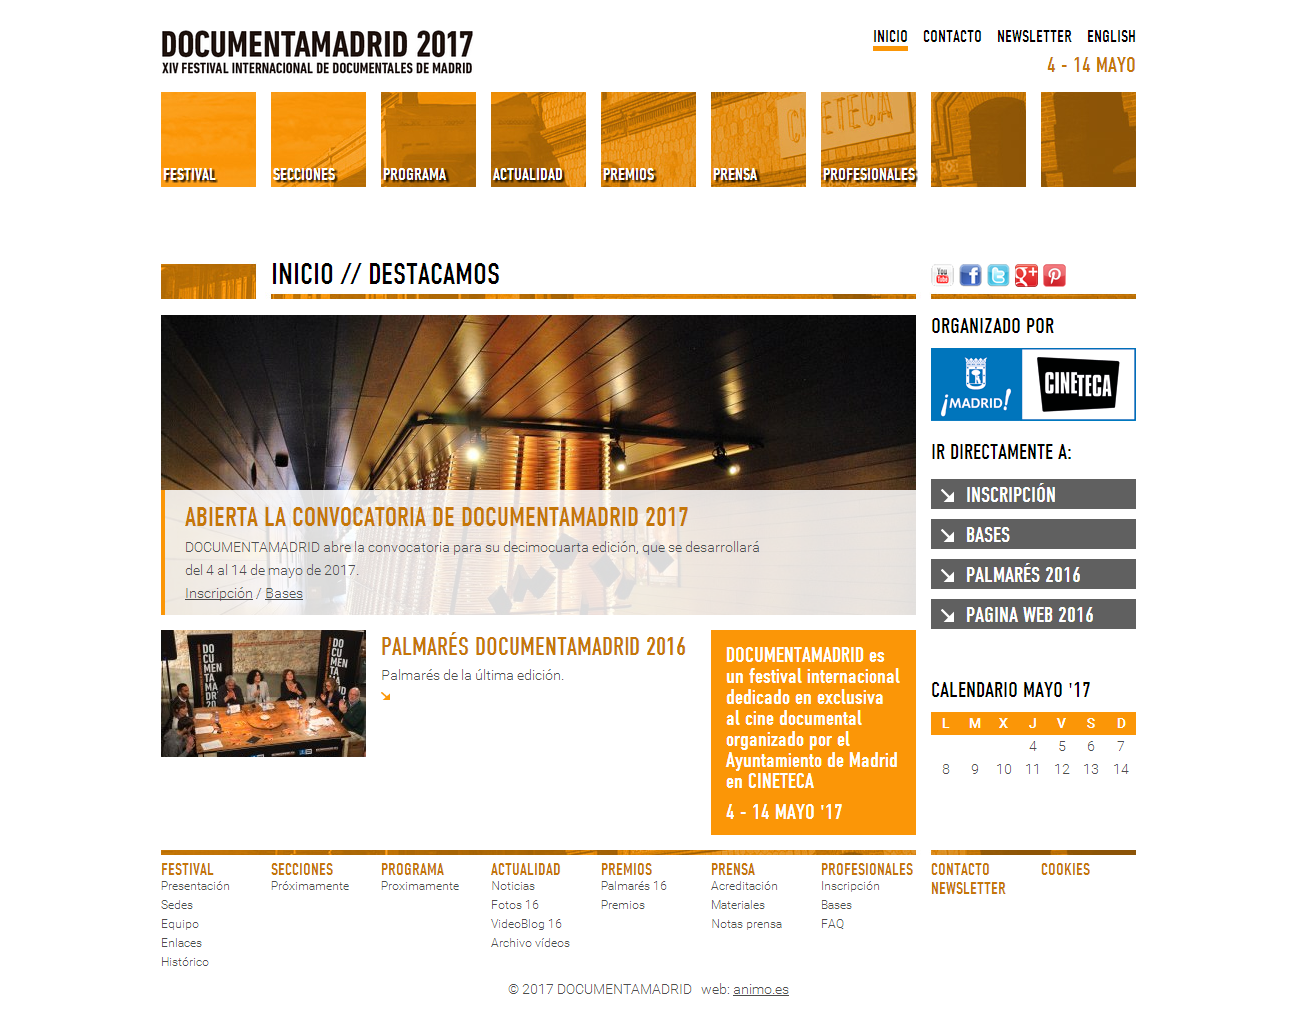 DOCUMENTAMADRID 2017, XIV Festival Internacional de Documentales de Madrid